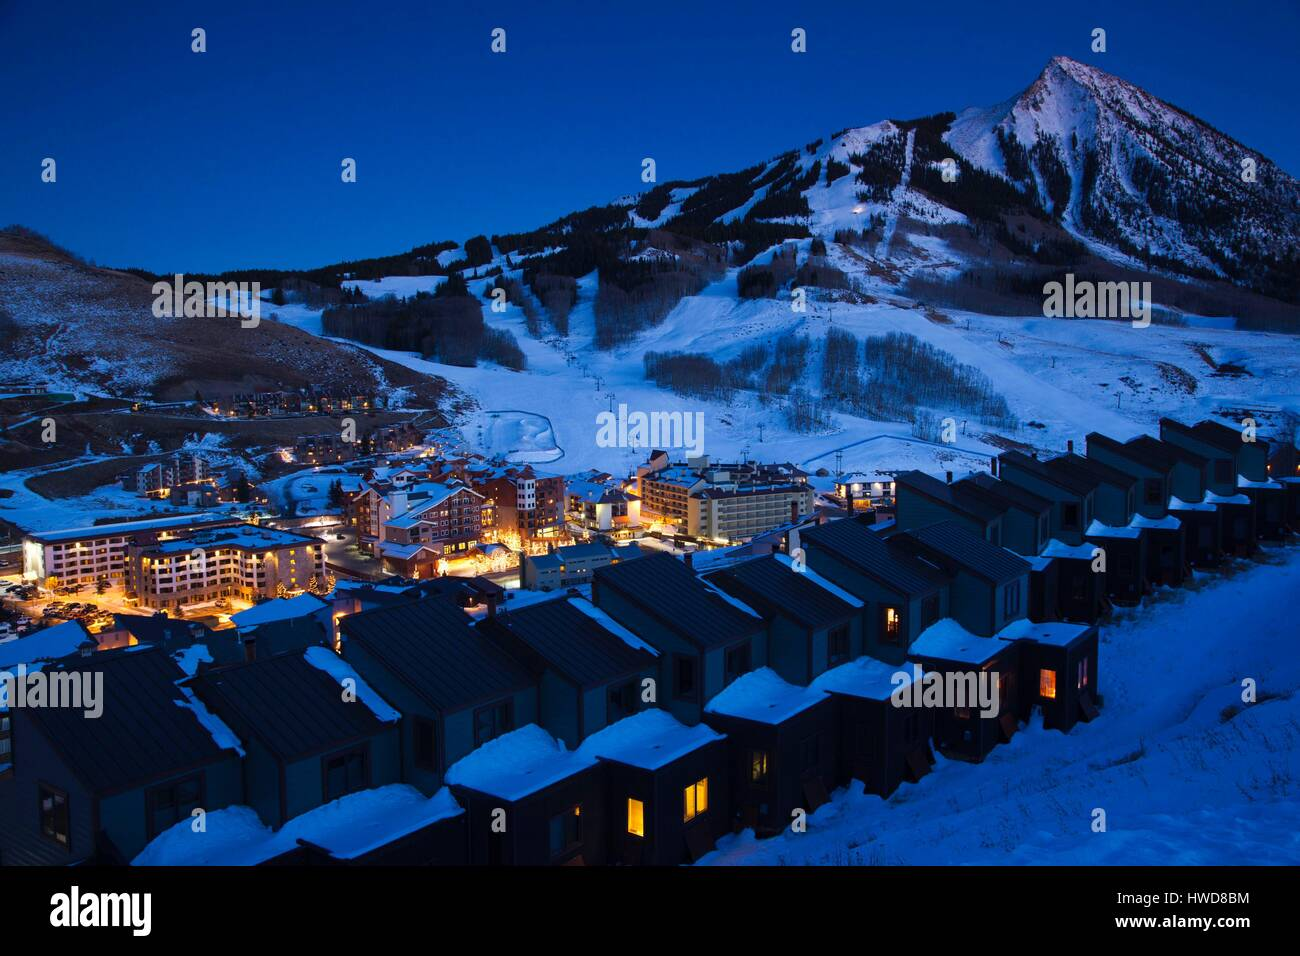 United States, Colorado, Crested Butte, Mount Crested Butte Ski Village, elevated view and Mount Crested Butte Mountain, - Stock Image